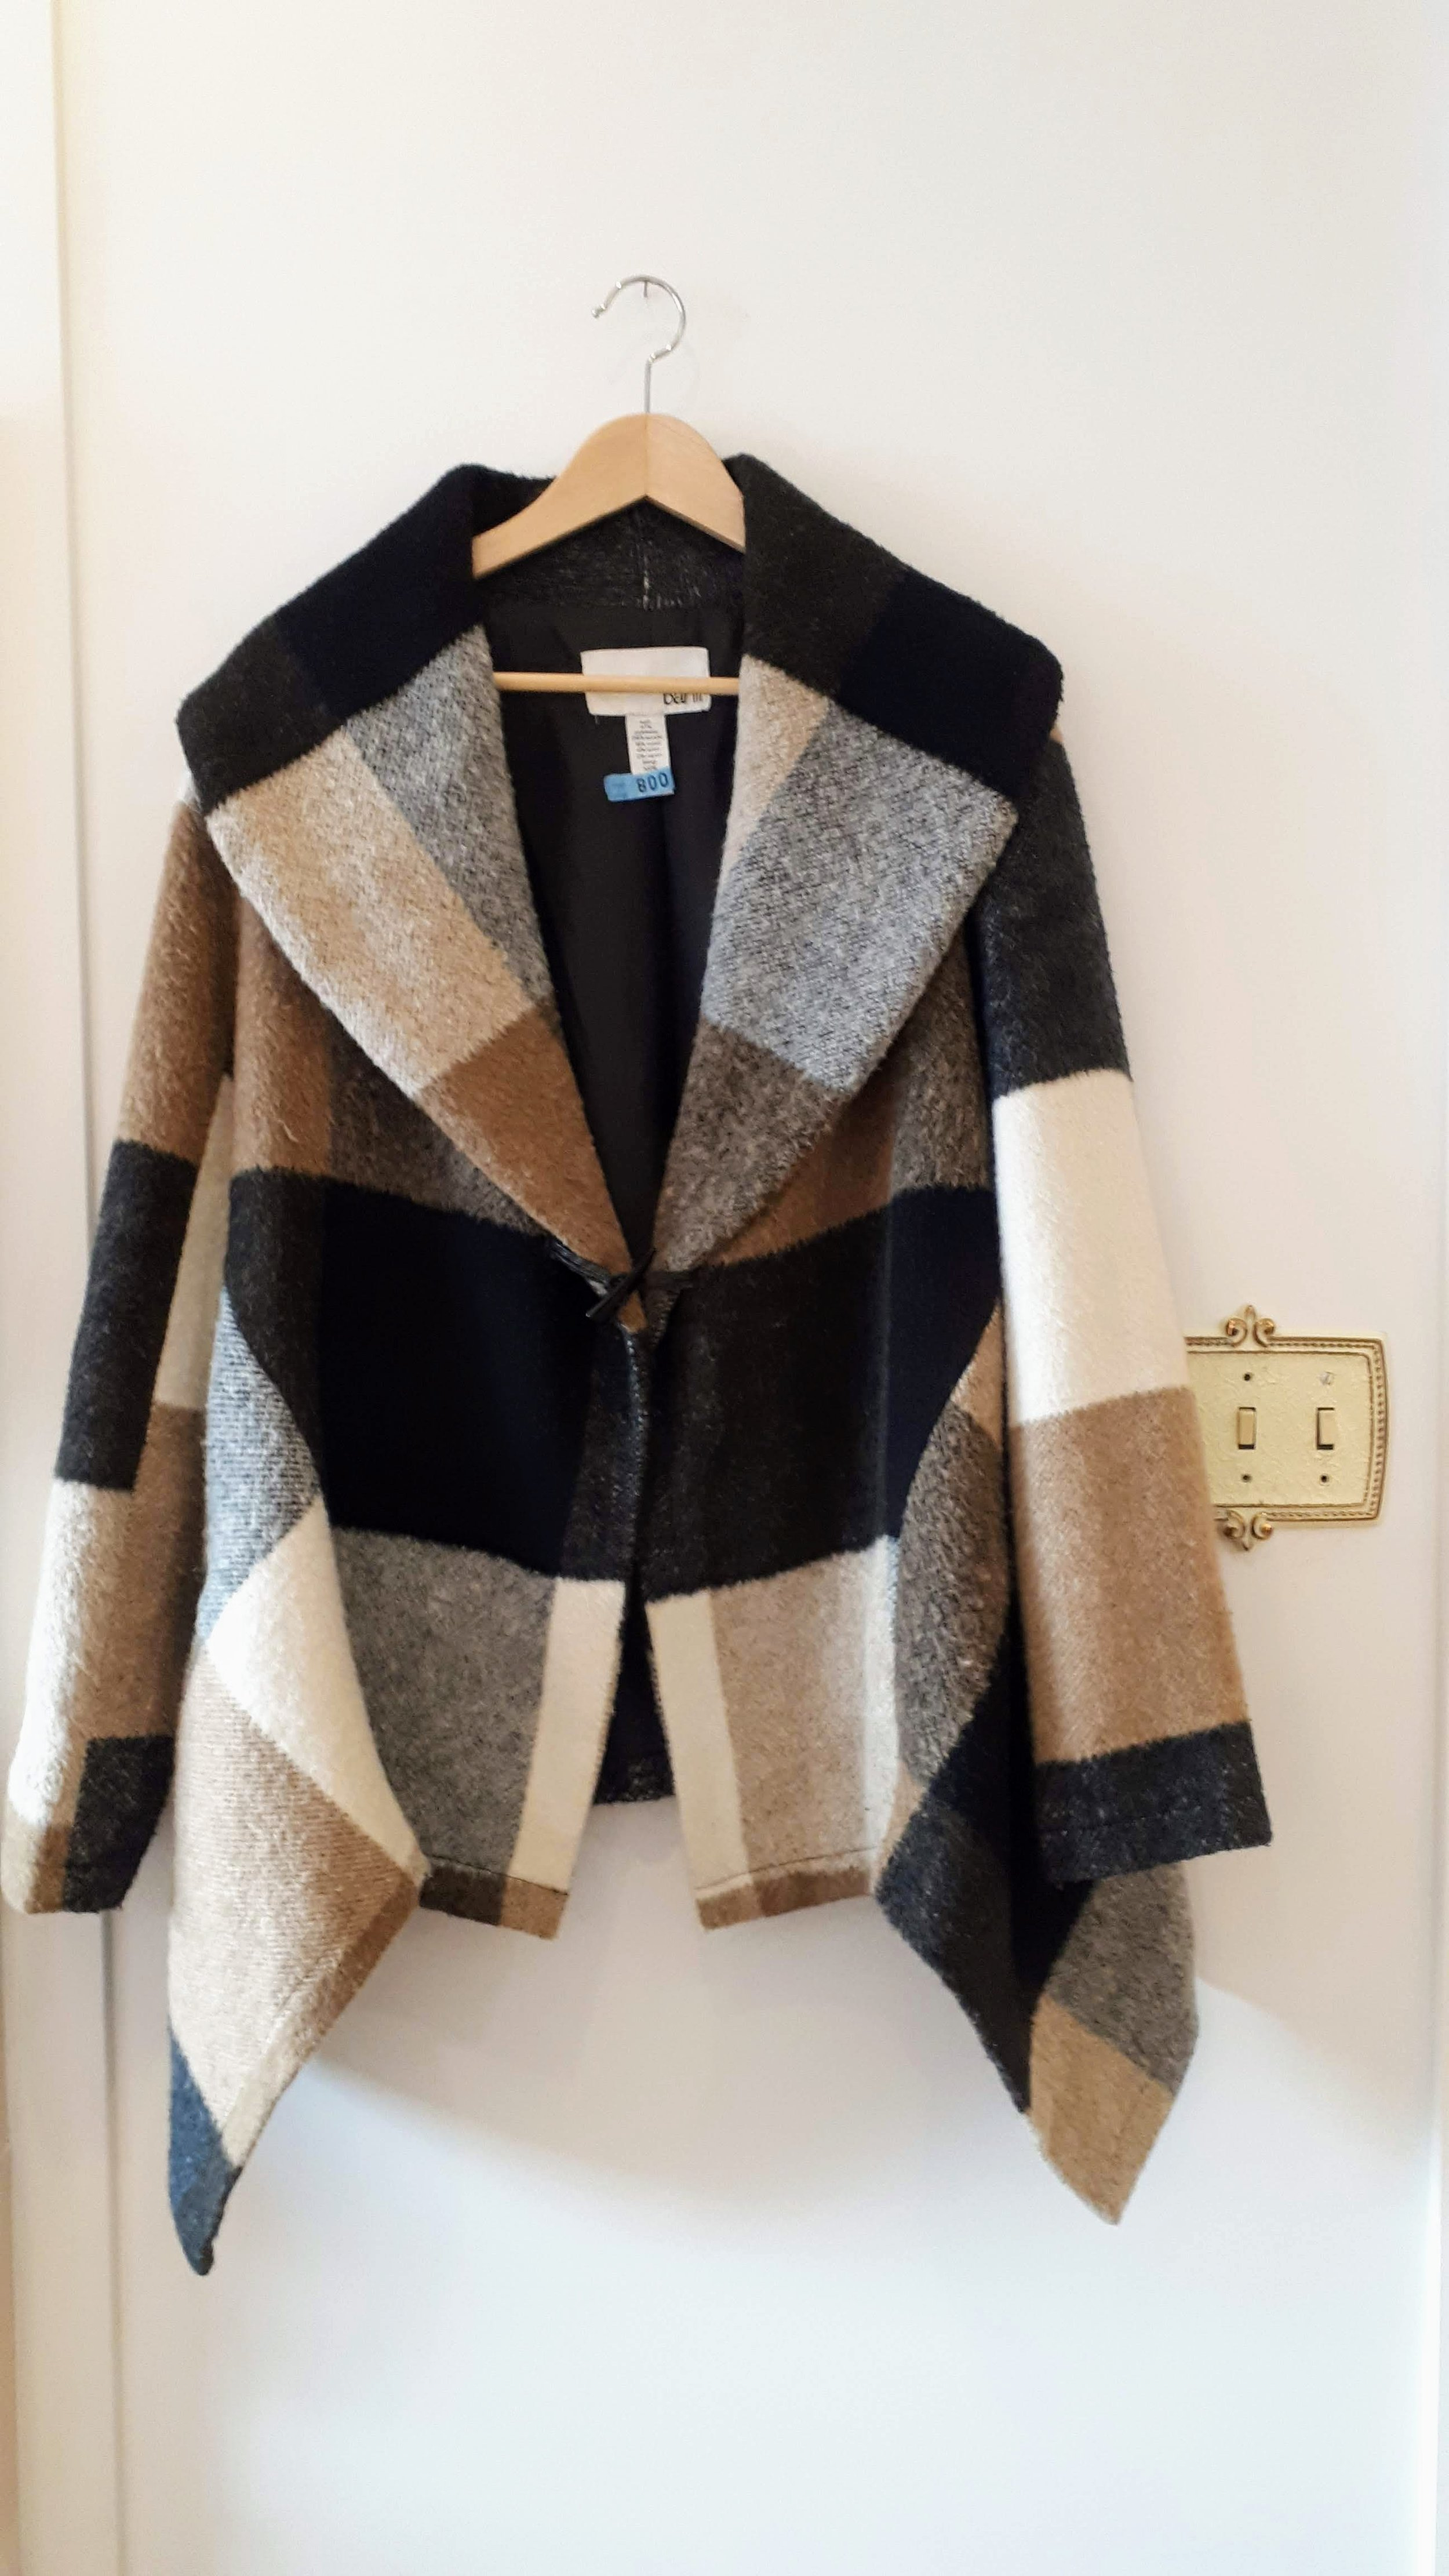 Bar III coat; Size XL, $48